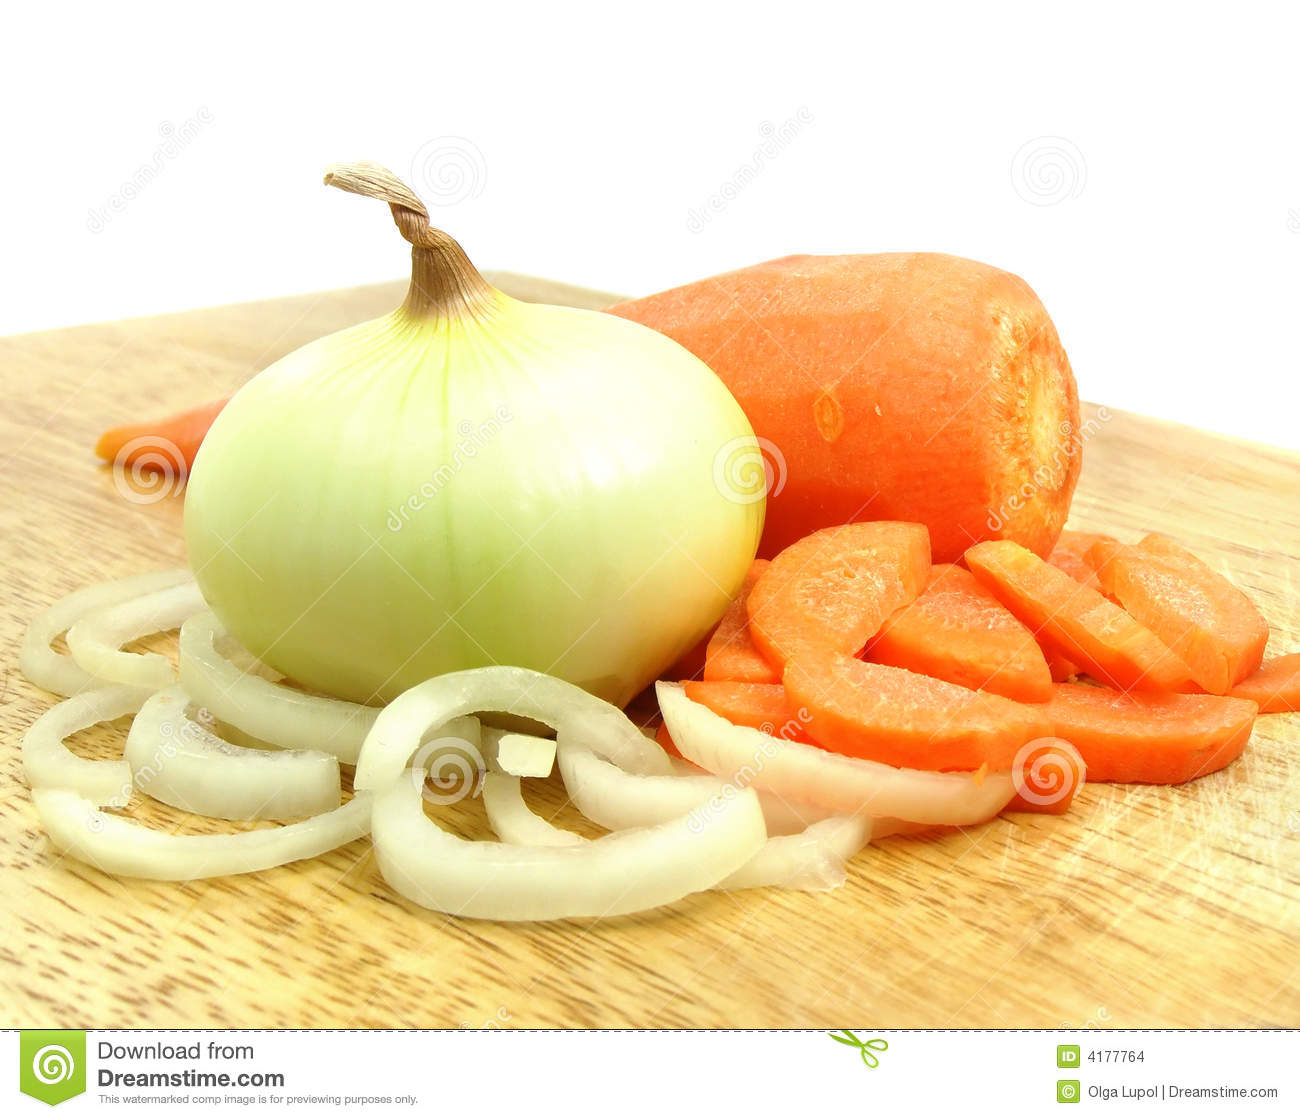 Carrot and onion vegetables still life